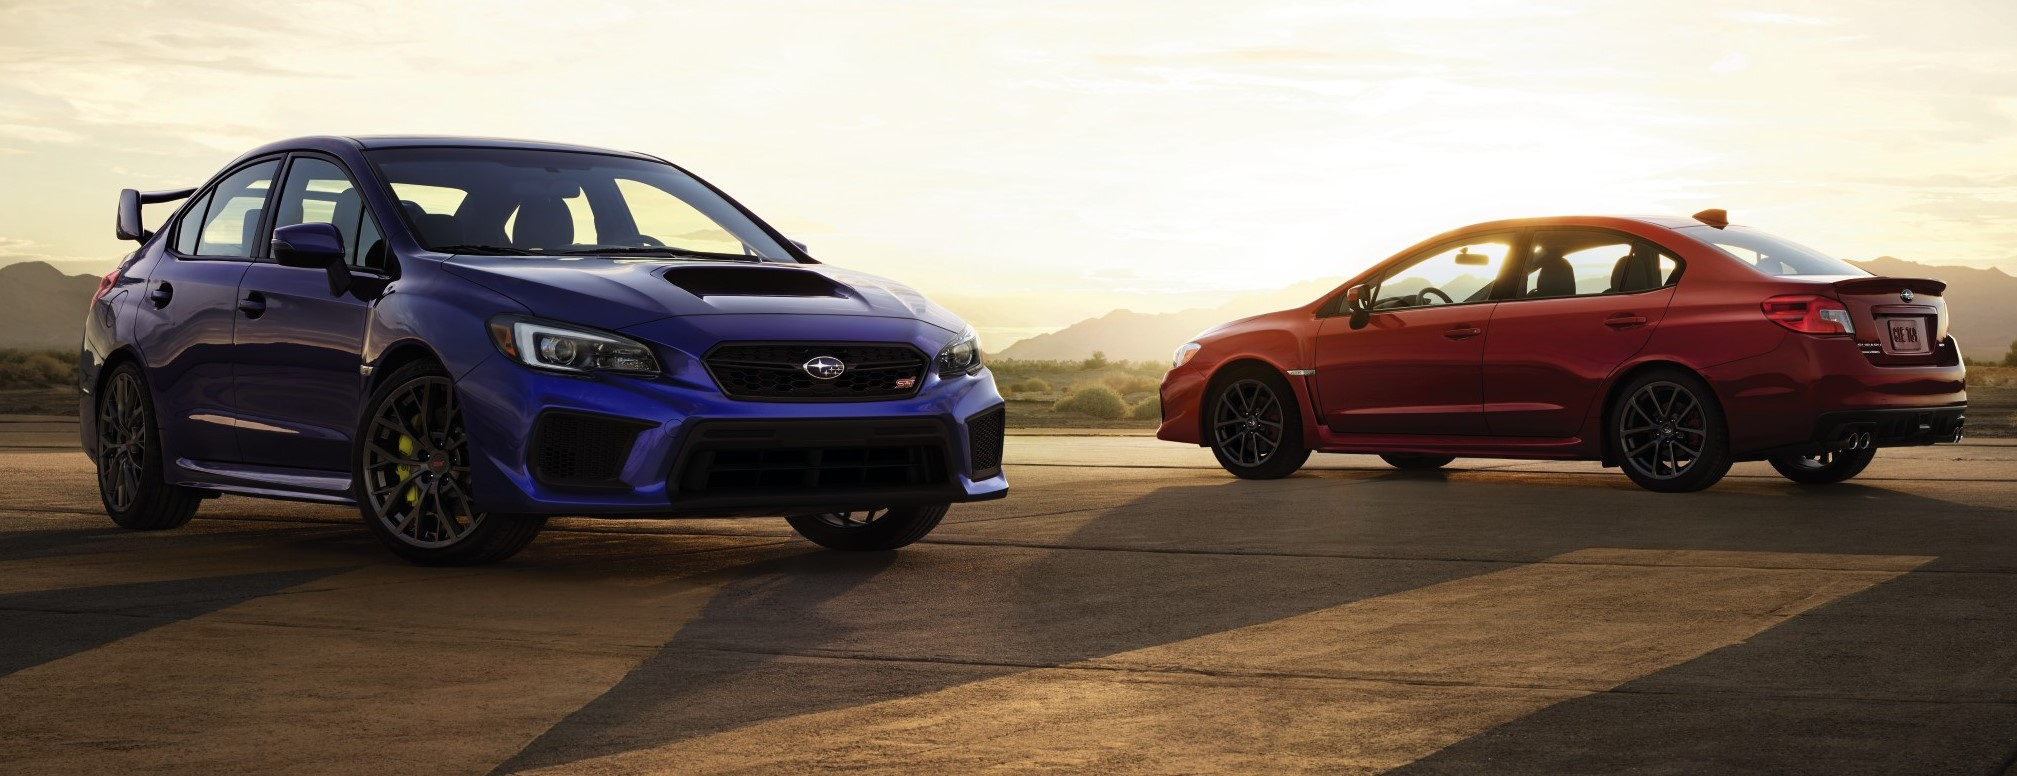 SUBARU AMERICA ANNOUNCES PRICING AND UPDATES FOR 2018 WRX AND WRX STI ...